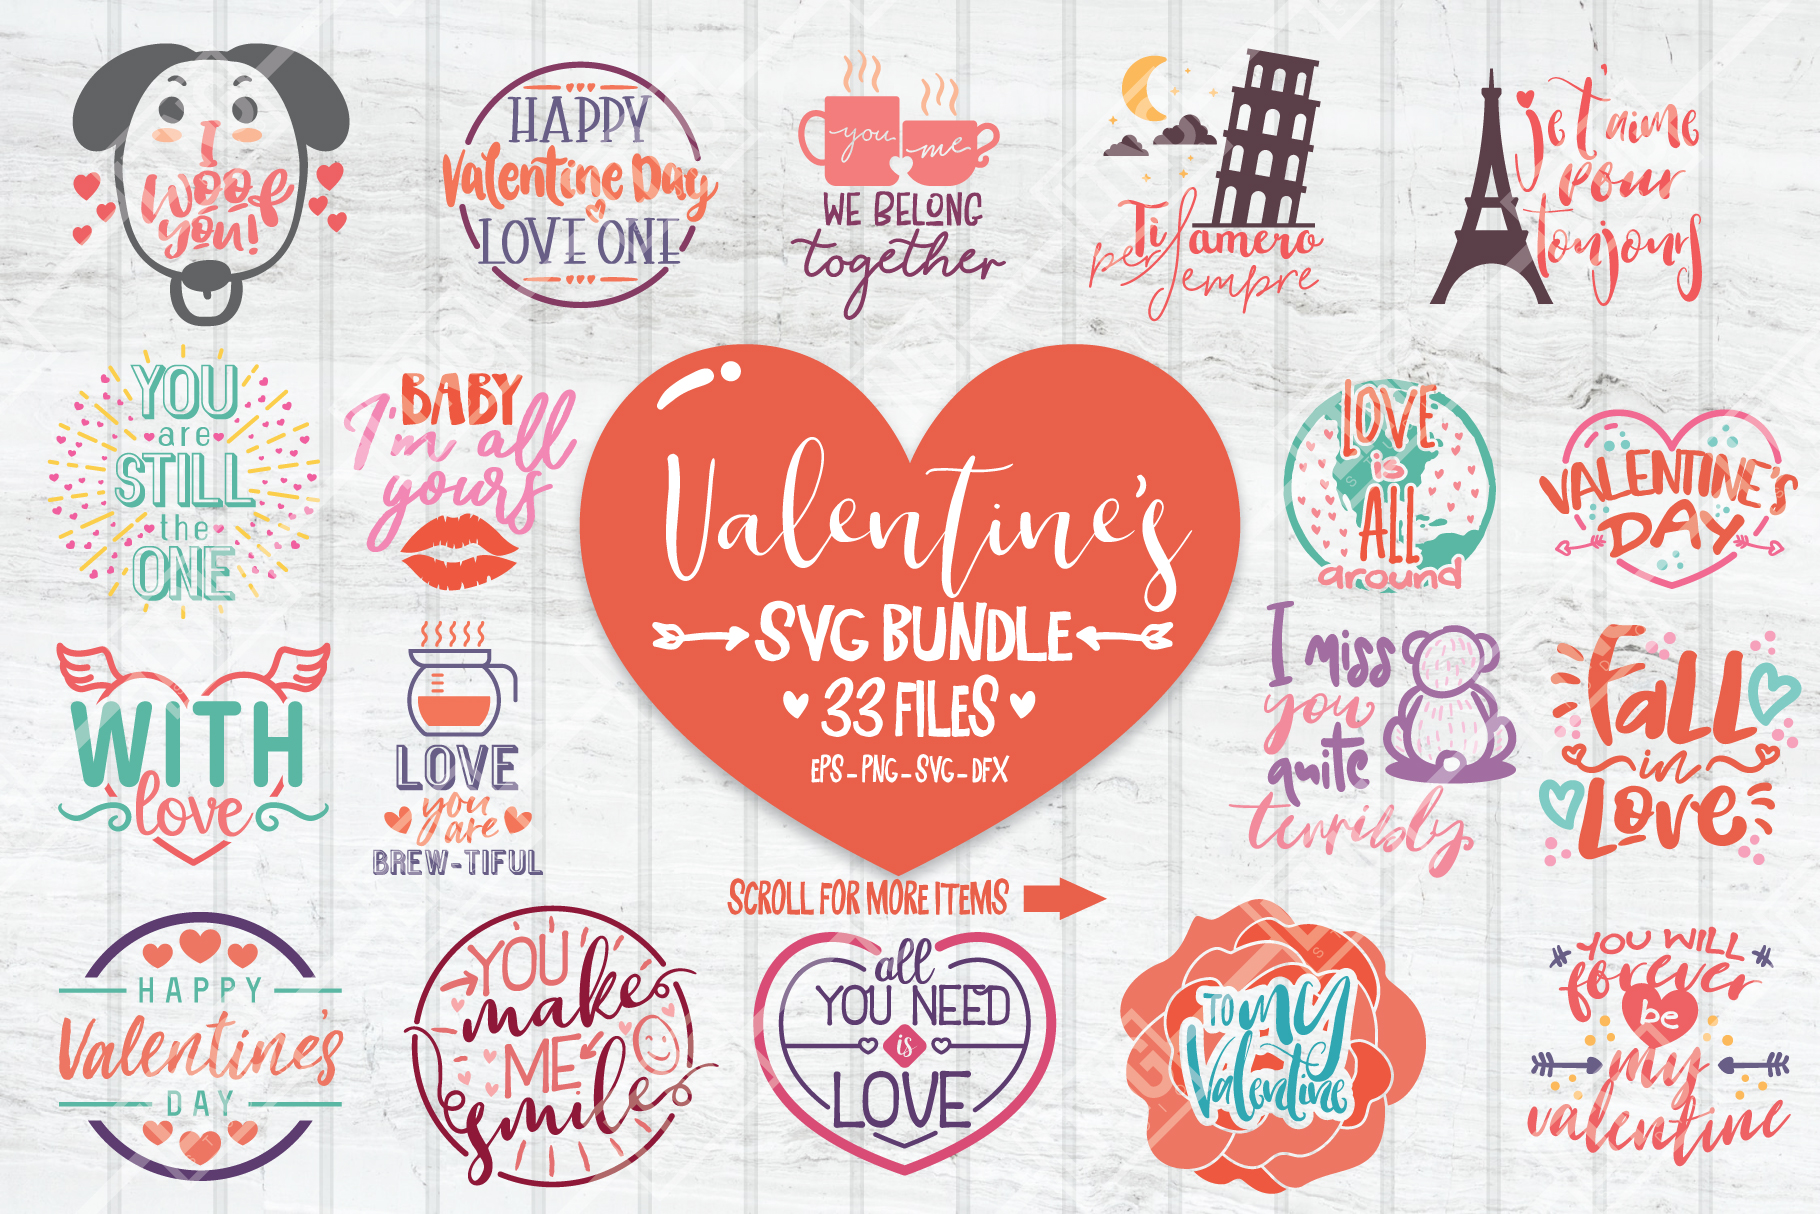 Download Free Valentine Bundle Graphic By Luluimanda82 Creative Fabrica for Cricut Explore, Silhouette and other cutting machines.